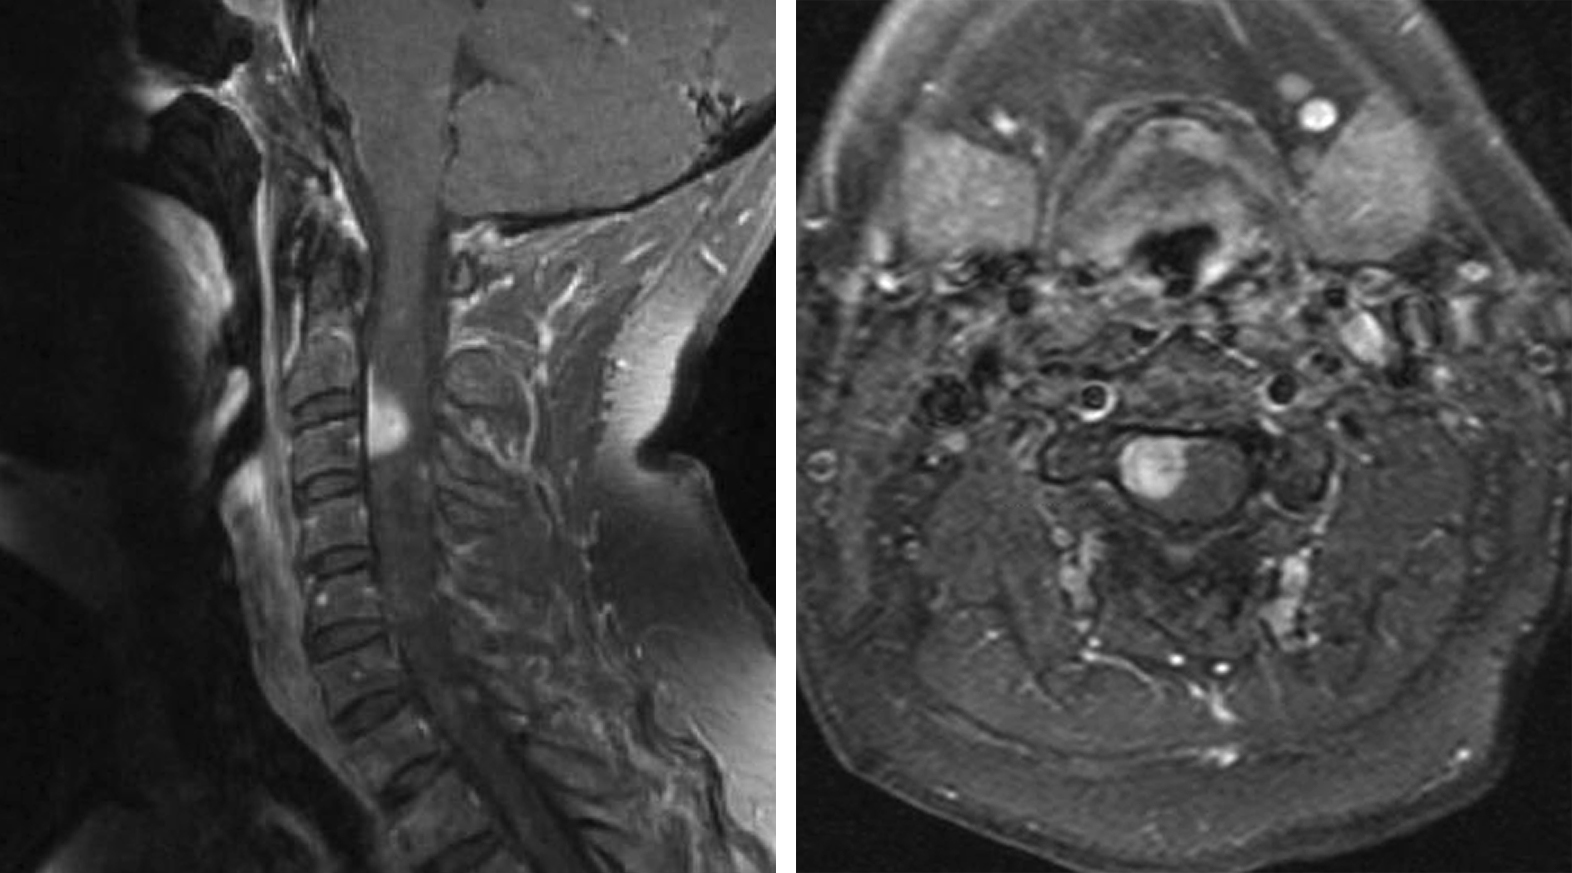 Figure 1: Typical imaging presentation of a cervical anterolateral meningioma: an intensely homogeneously enhancing dural-based tumor with a dural tail.